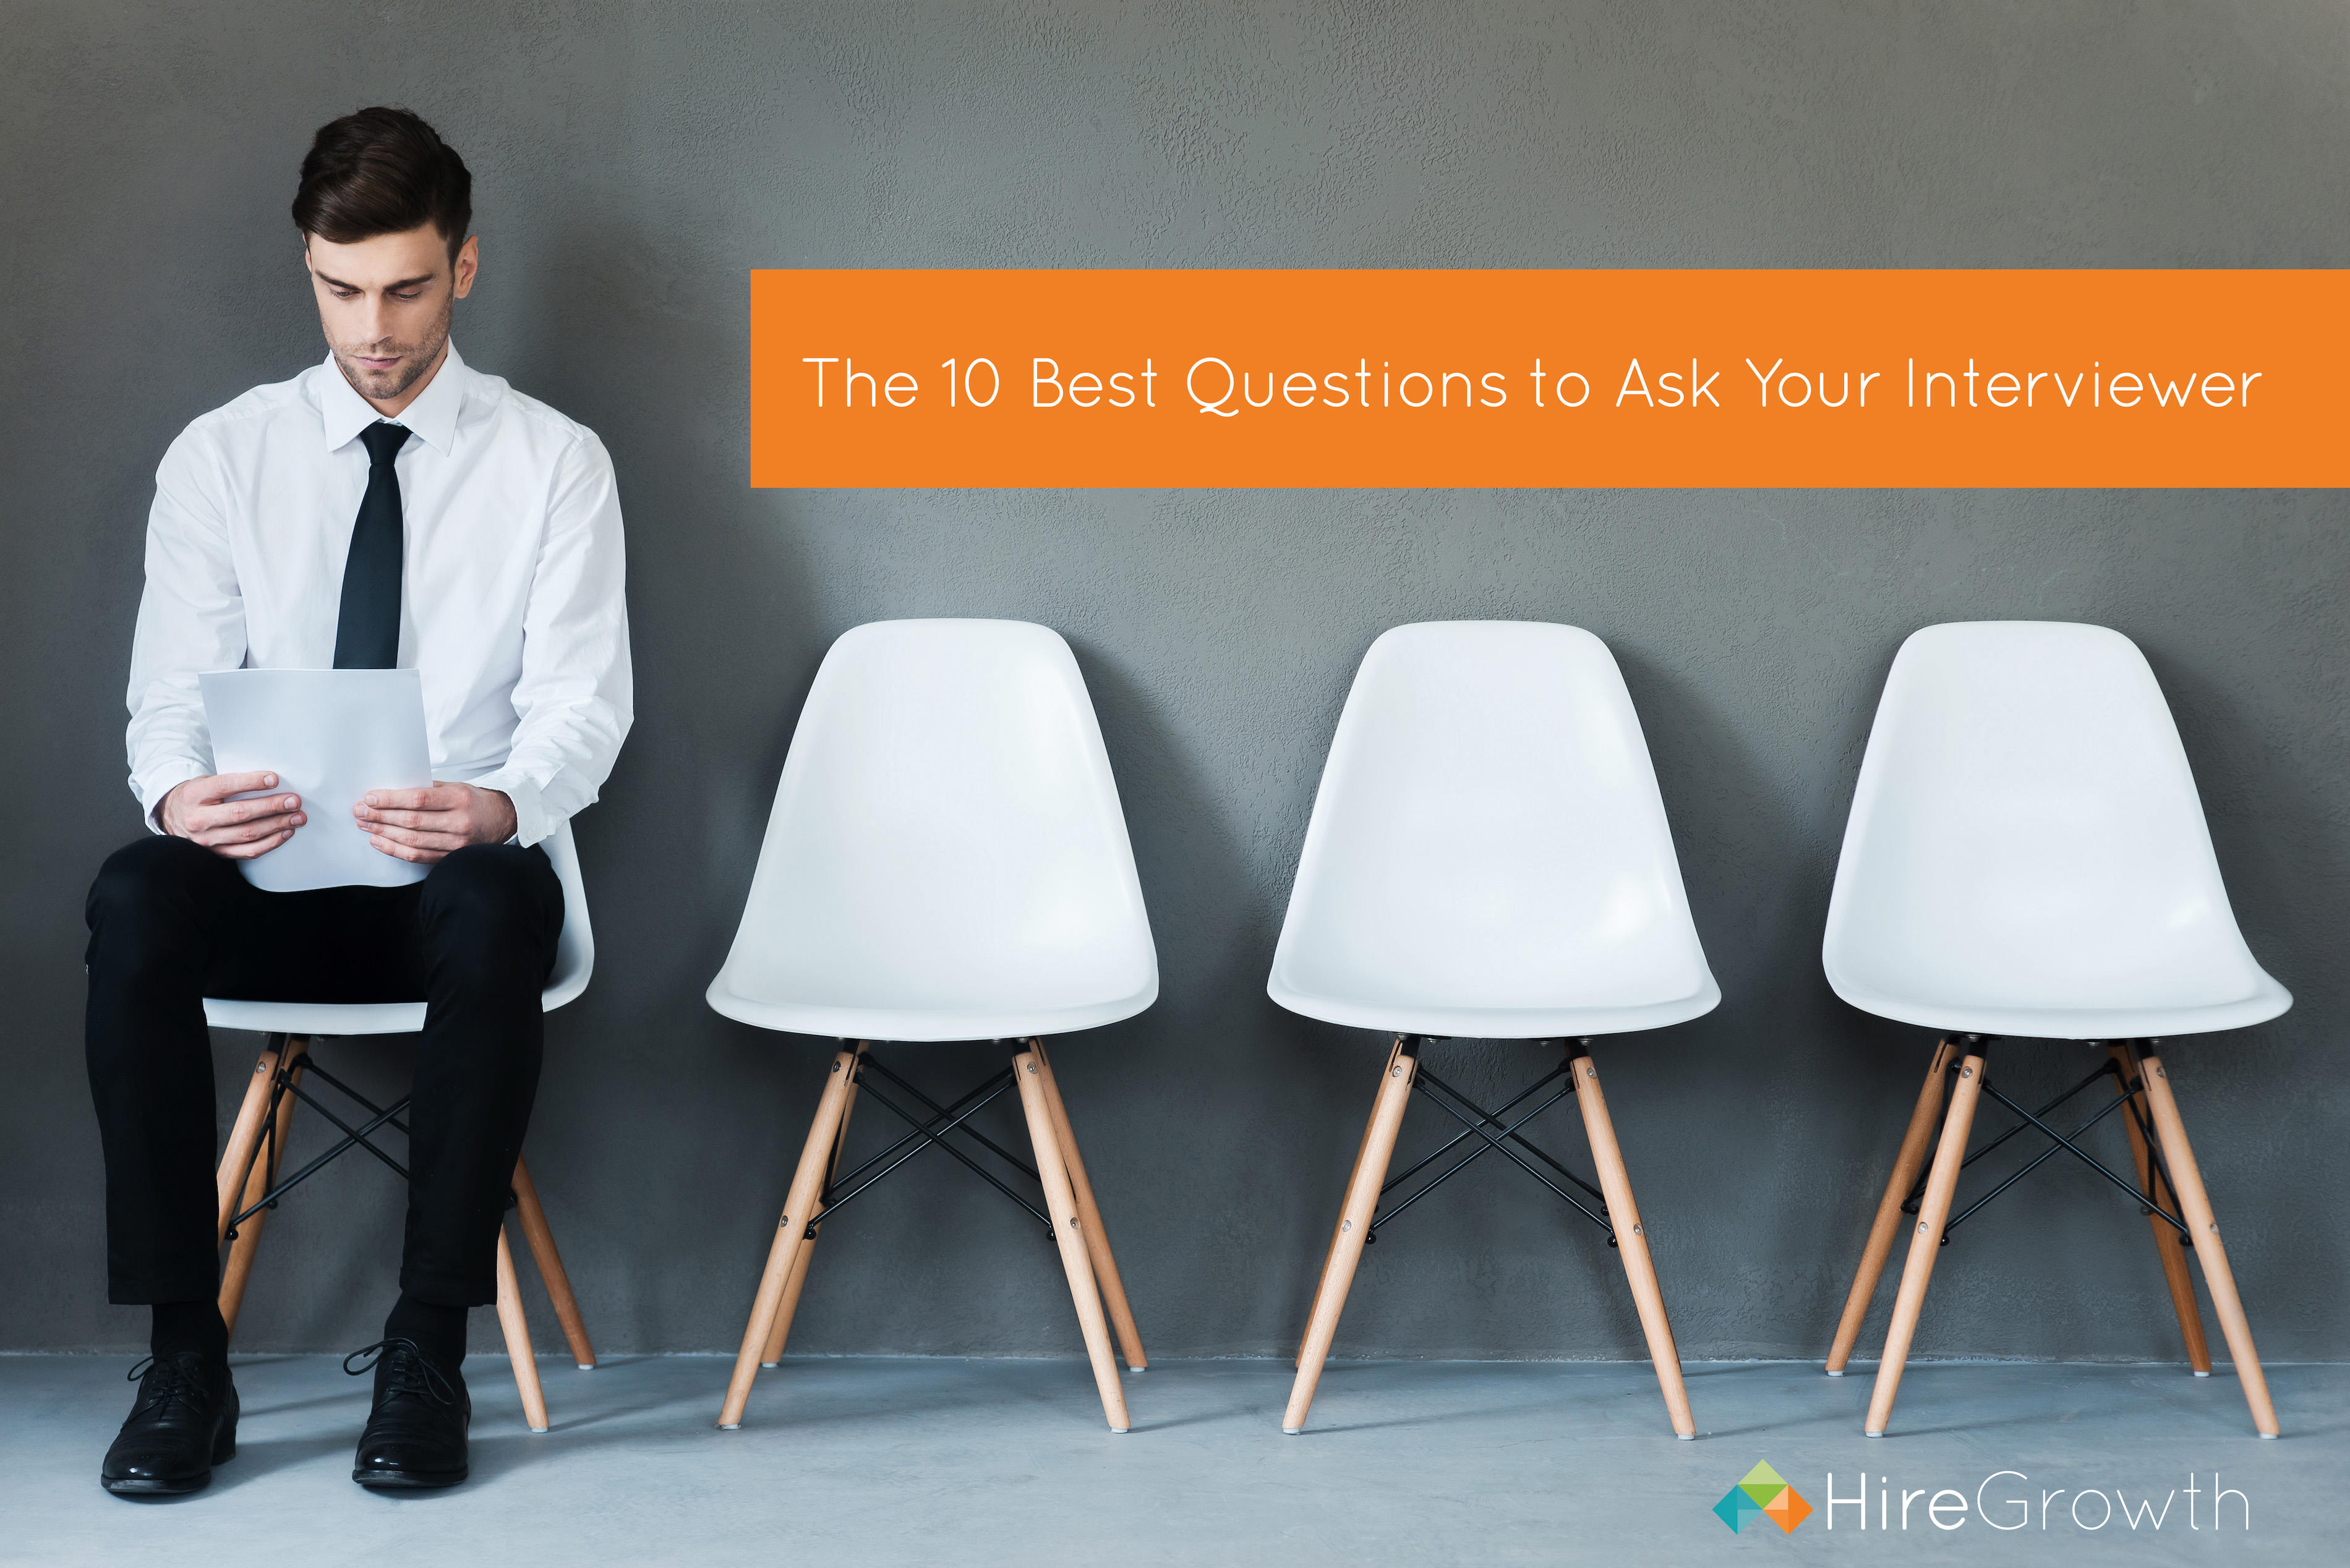 blog hiregrowth the 10 best questions to ask your interviewer